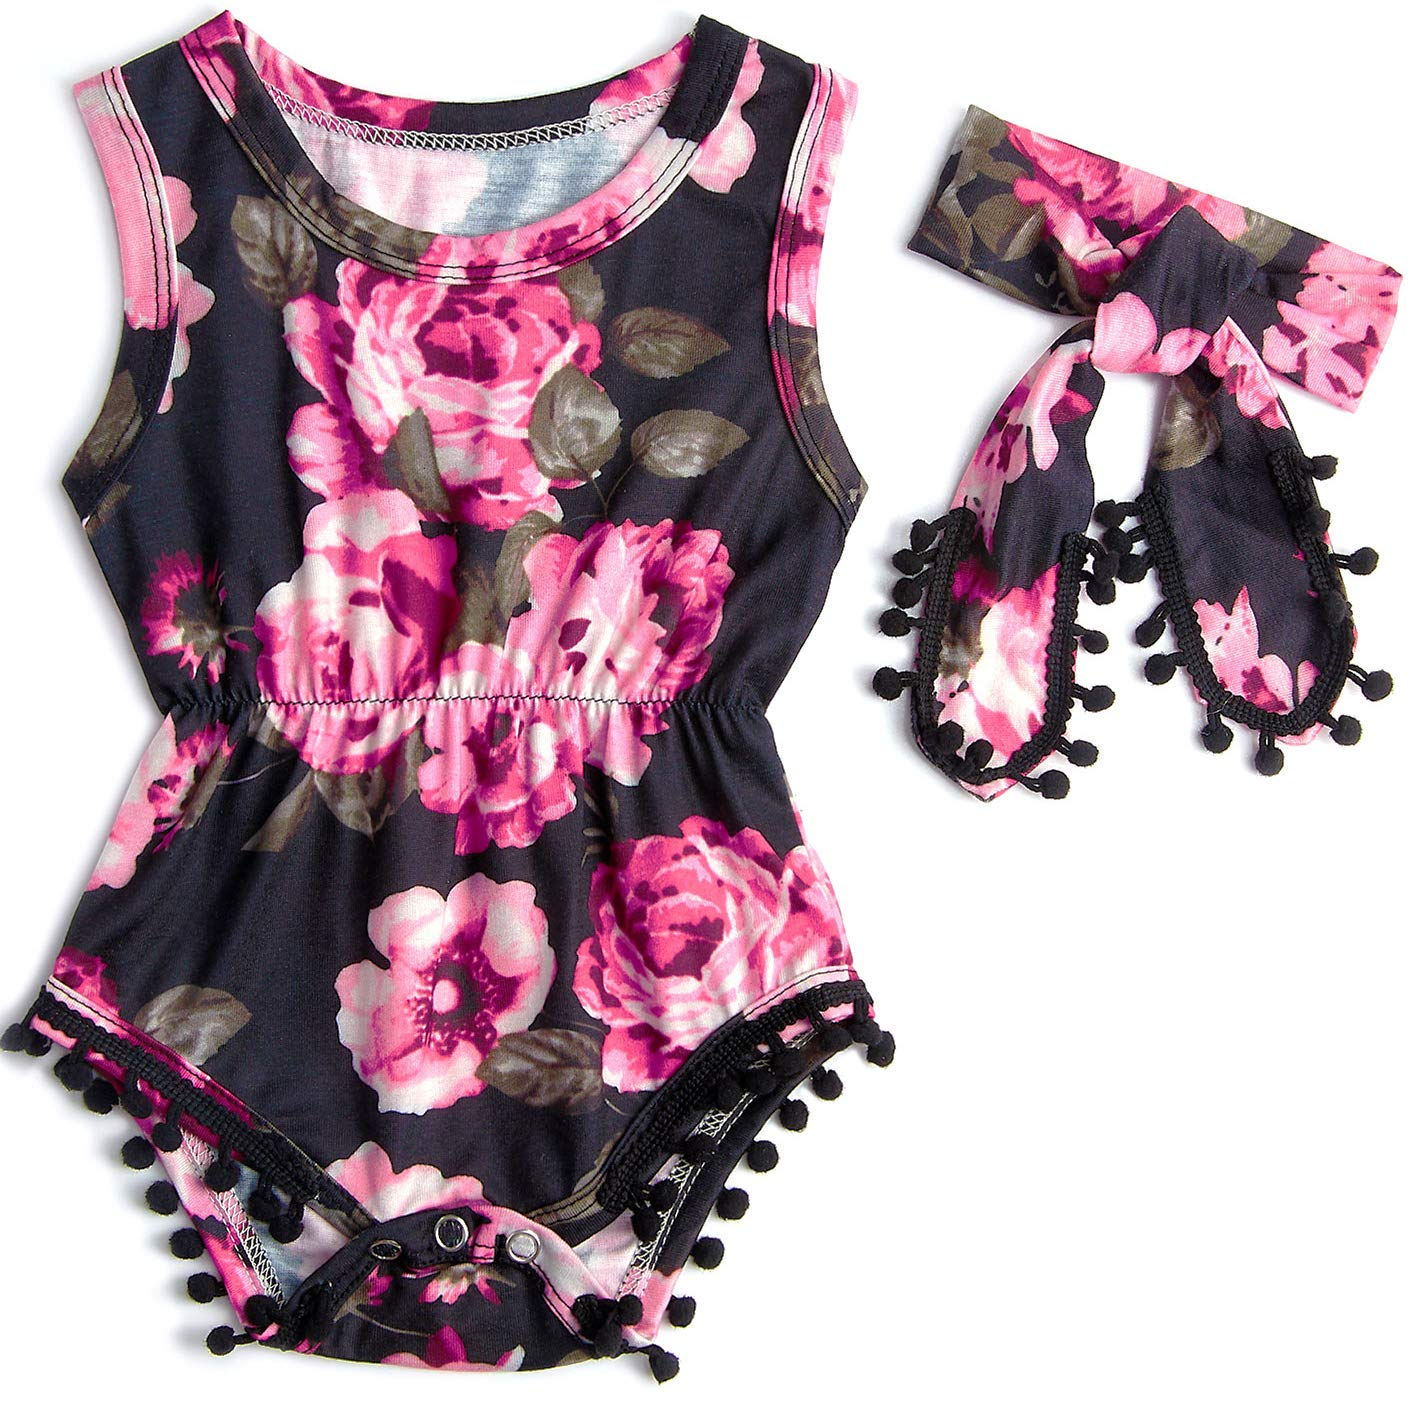 Belovecol Supersoft Cotton Sleeveless Newborn Clothes Flower Baby Girl Romper for Toddler Infant 3-6 M